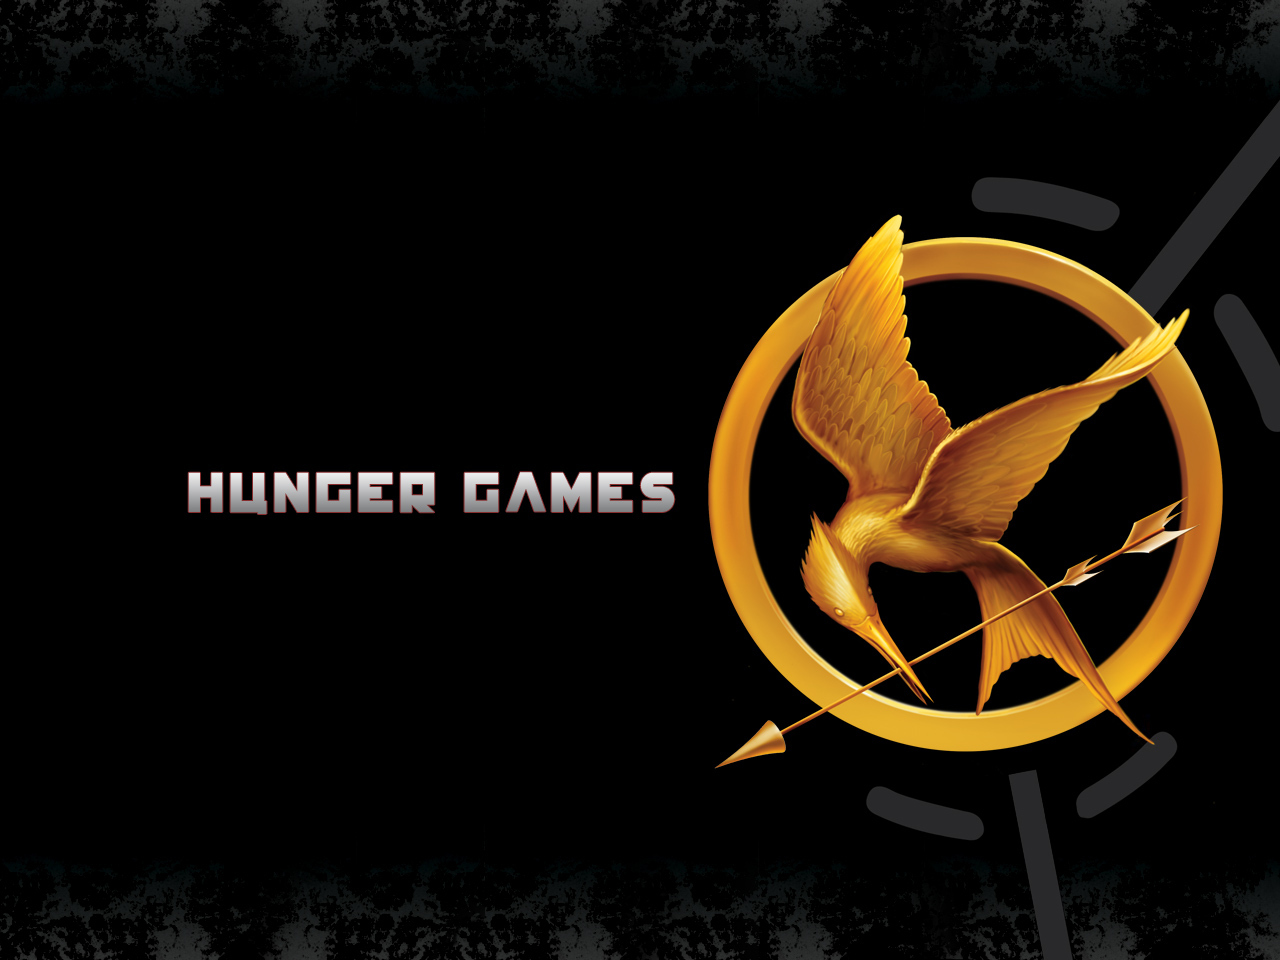 The Hunger Games: A Barbaric Socialist Saga of Impending Obama-Sanctioned Doom